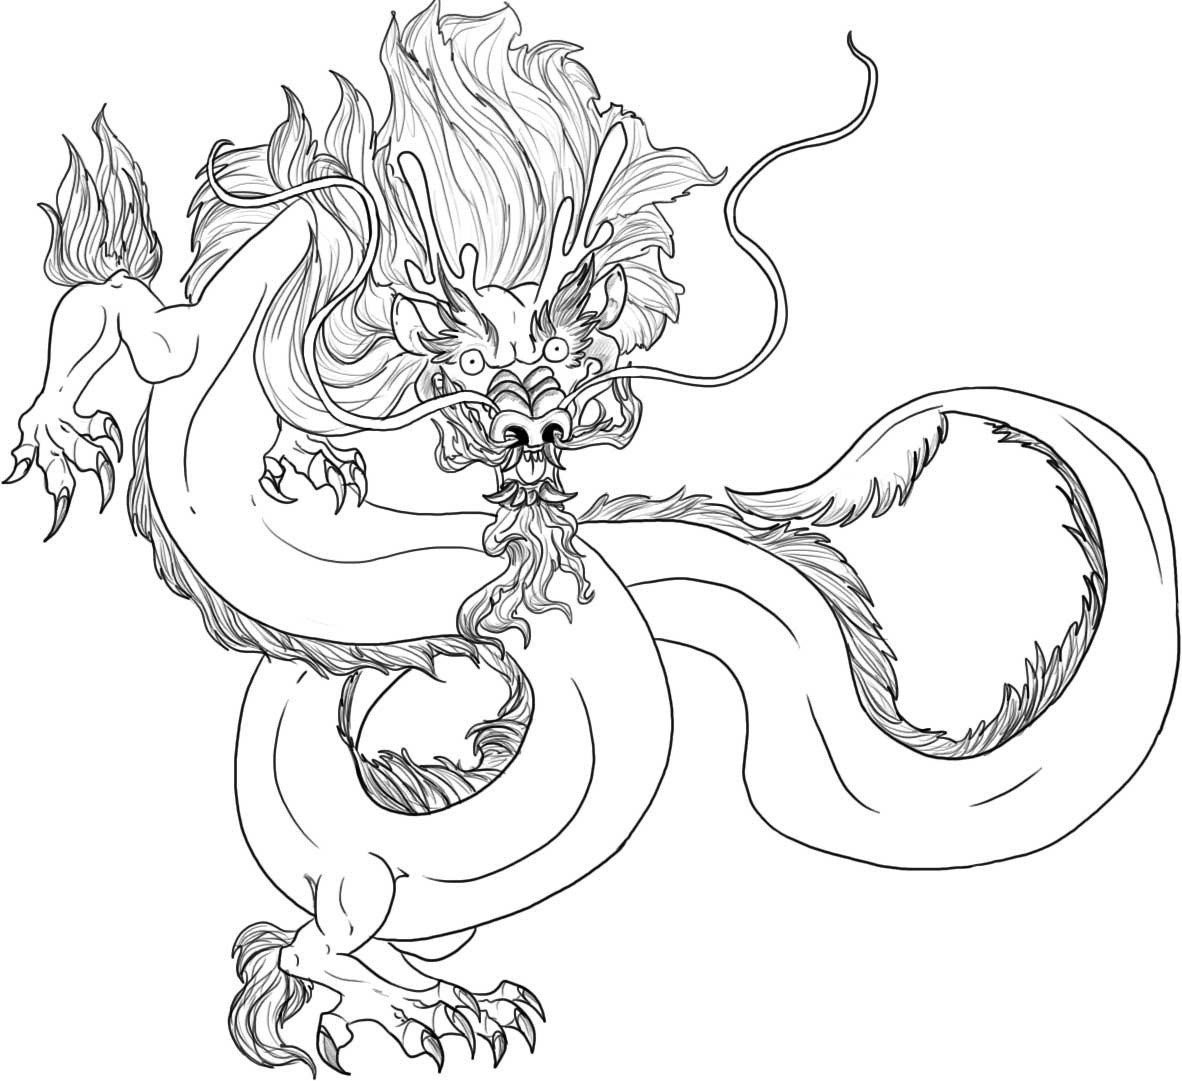 1182x1081 Dragons Earth Coloring Pages Printable Awesome Dragon Coloring